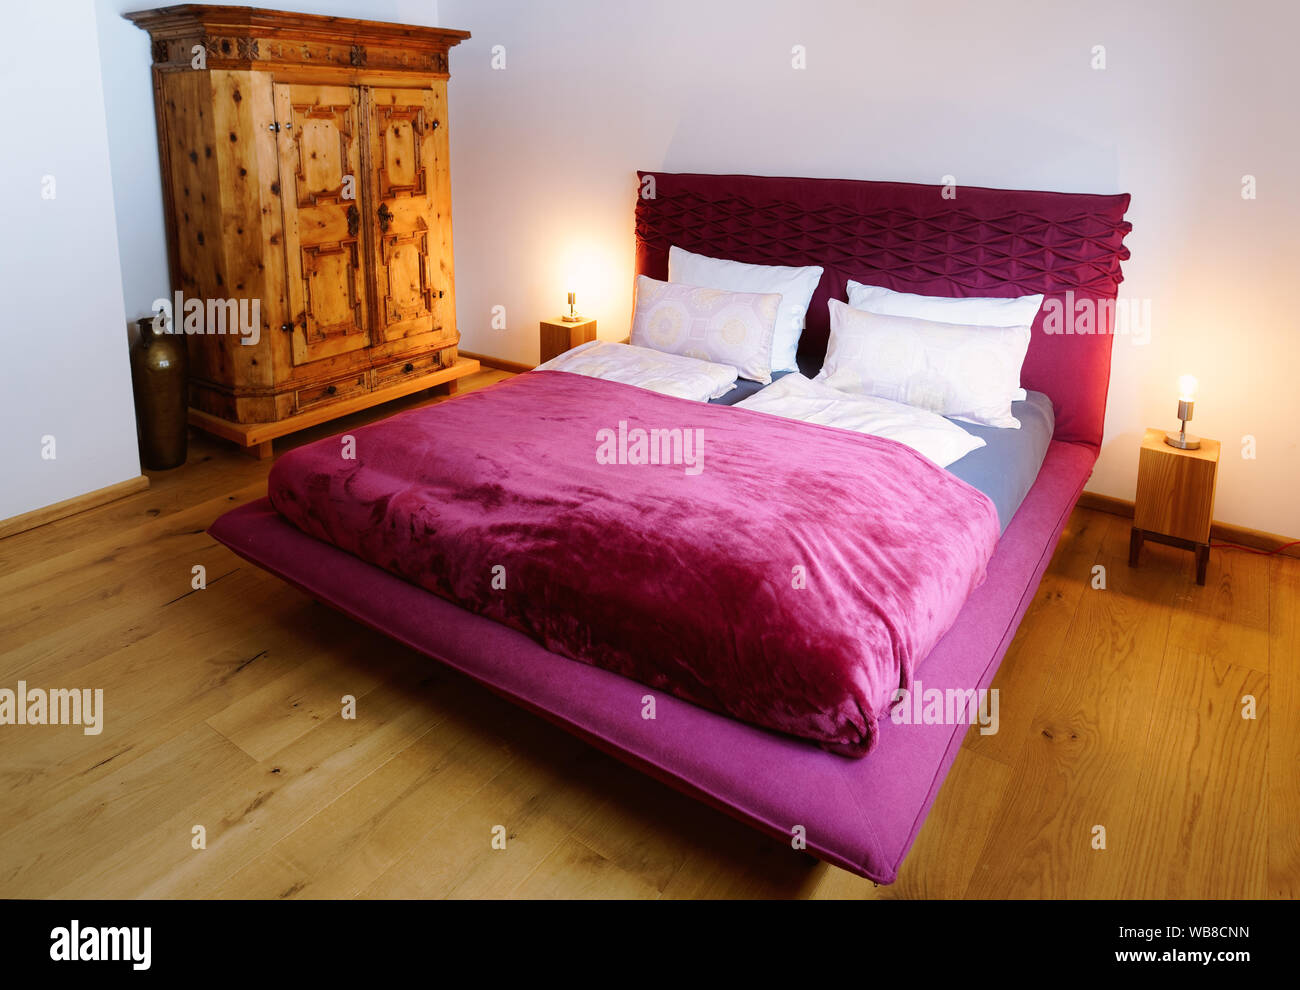 Interior With Bedroom Modern Design Of Pink Bed Wooden